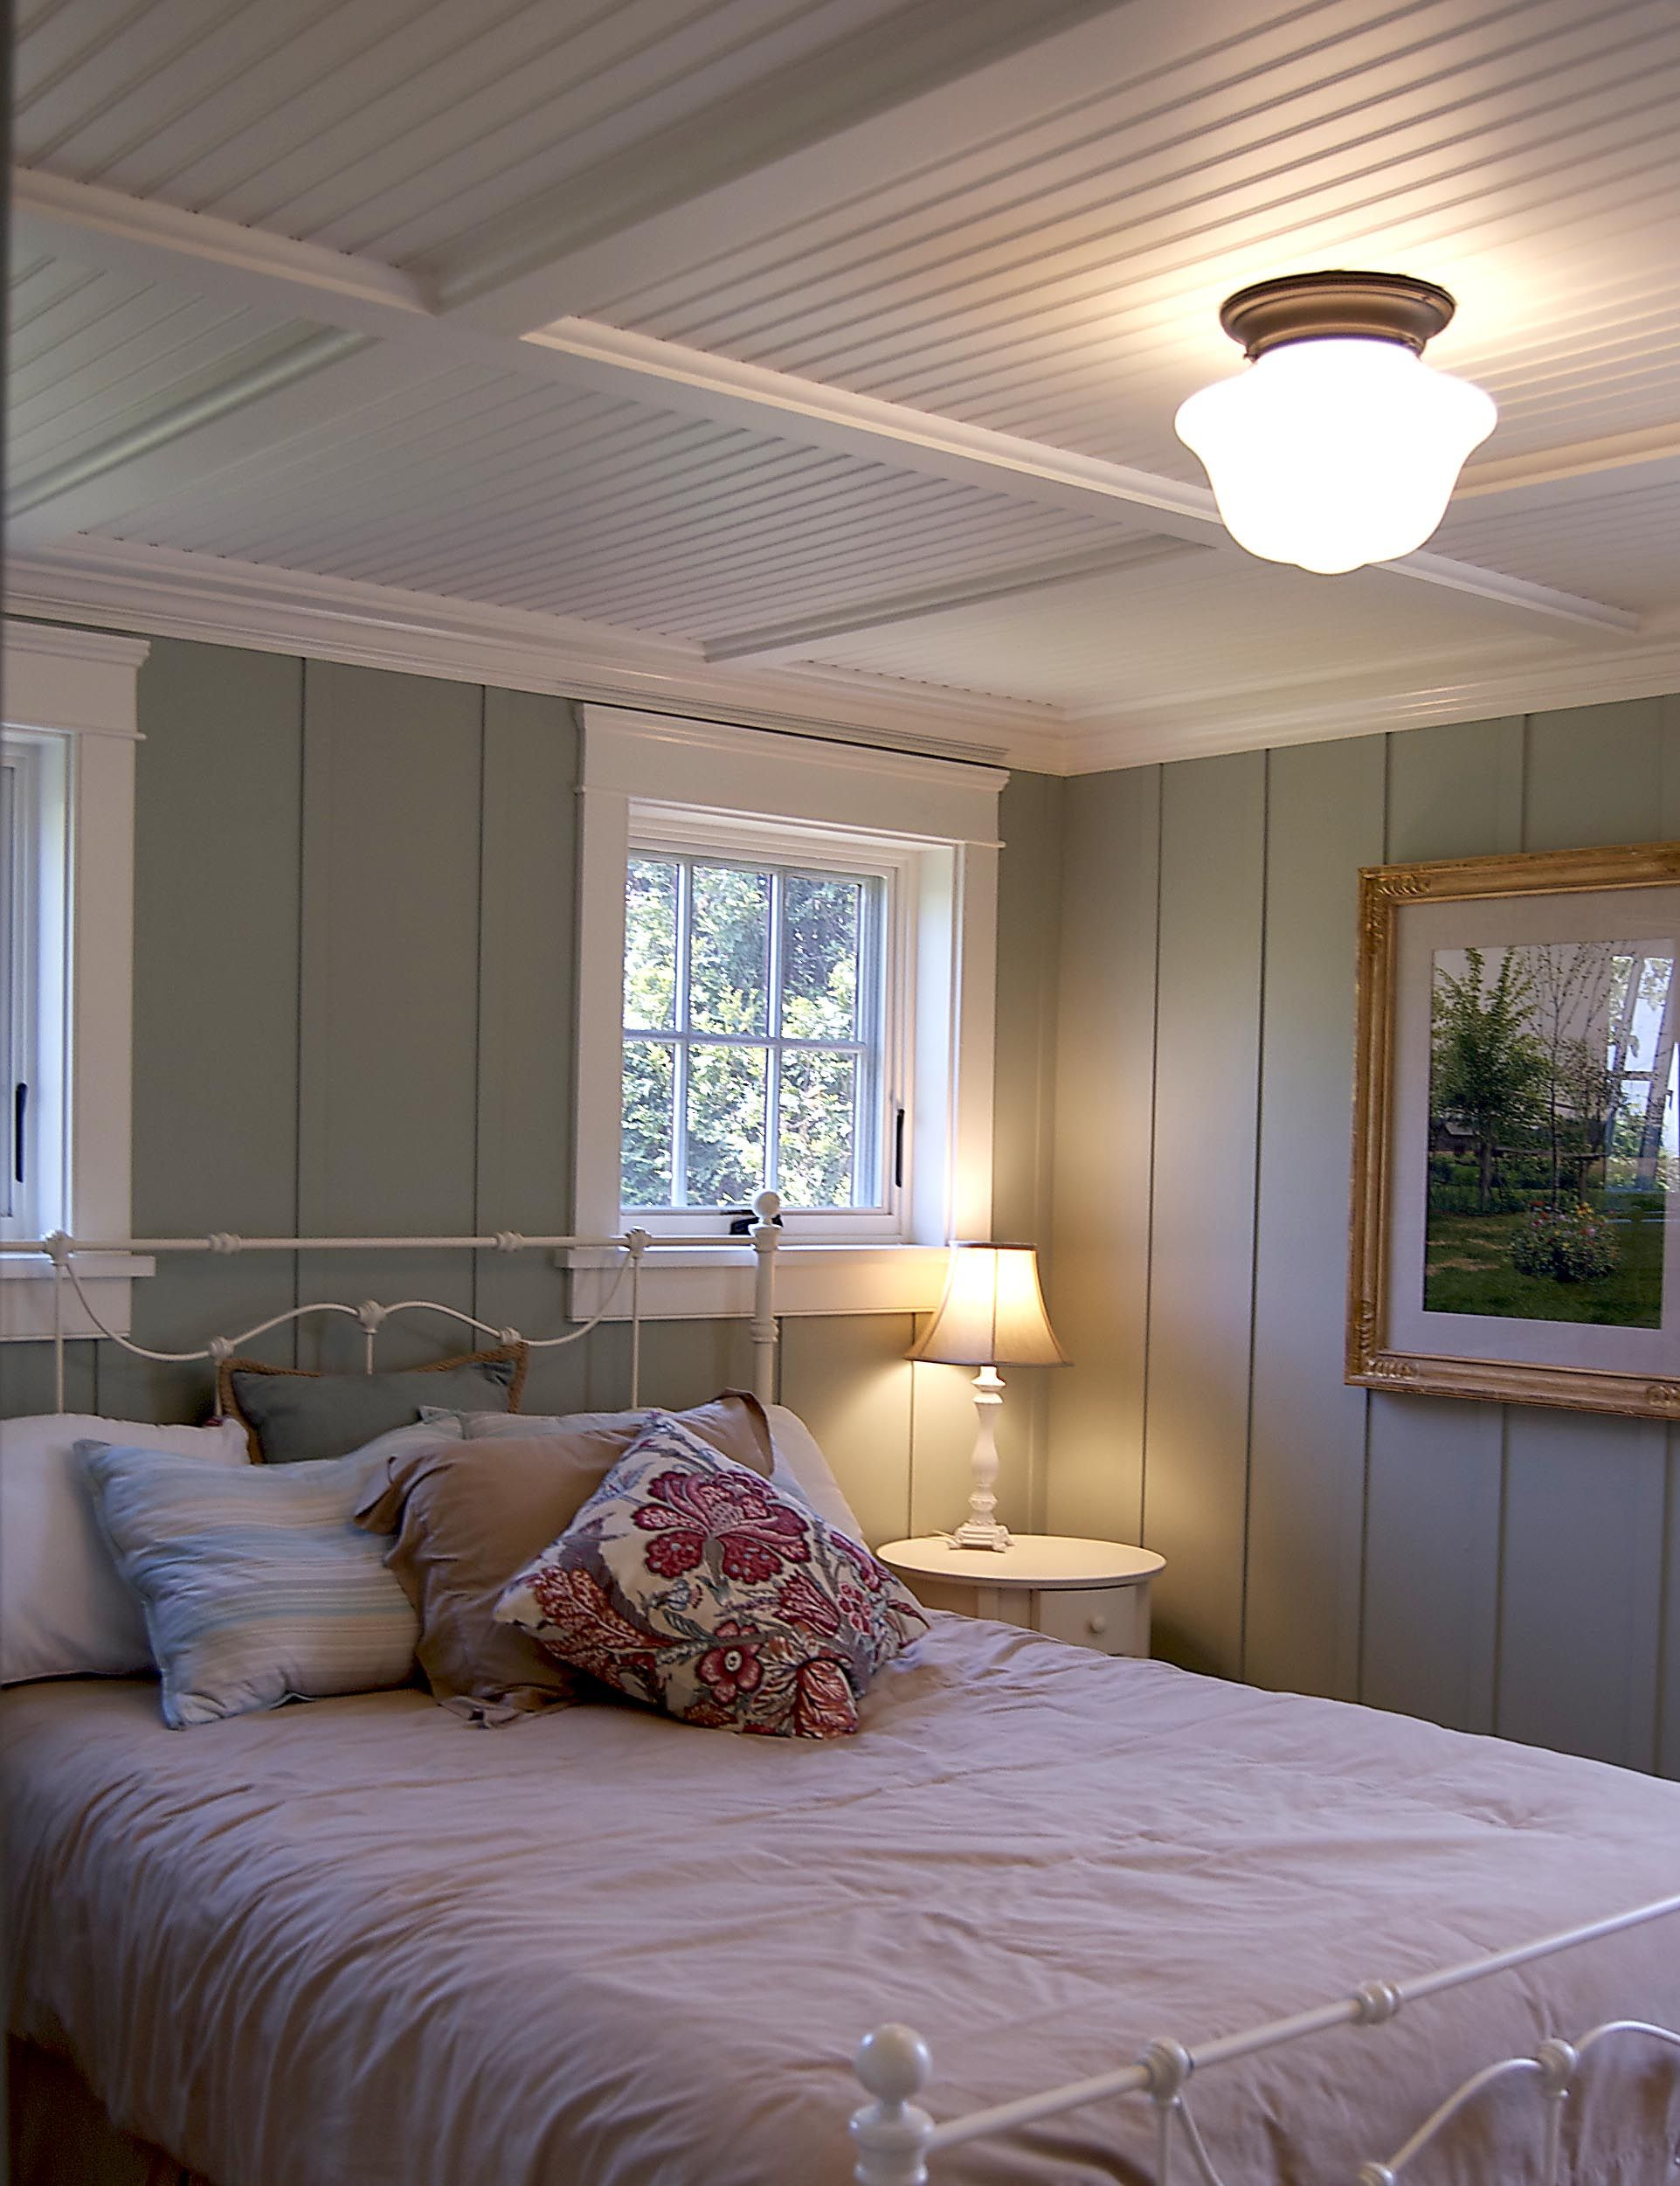 Bedroom ceiling paint ideas - Gulfshoredesign Com Cottage Bedroom With Floor To Ceiling Painted Wood Paneling